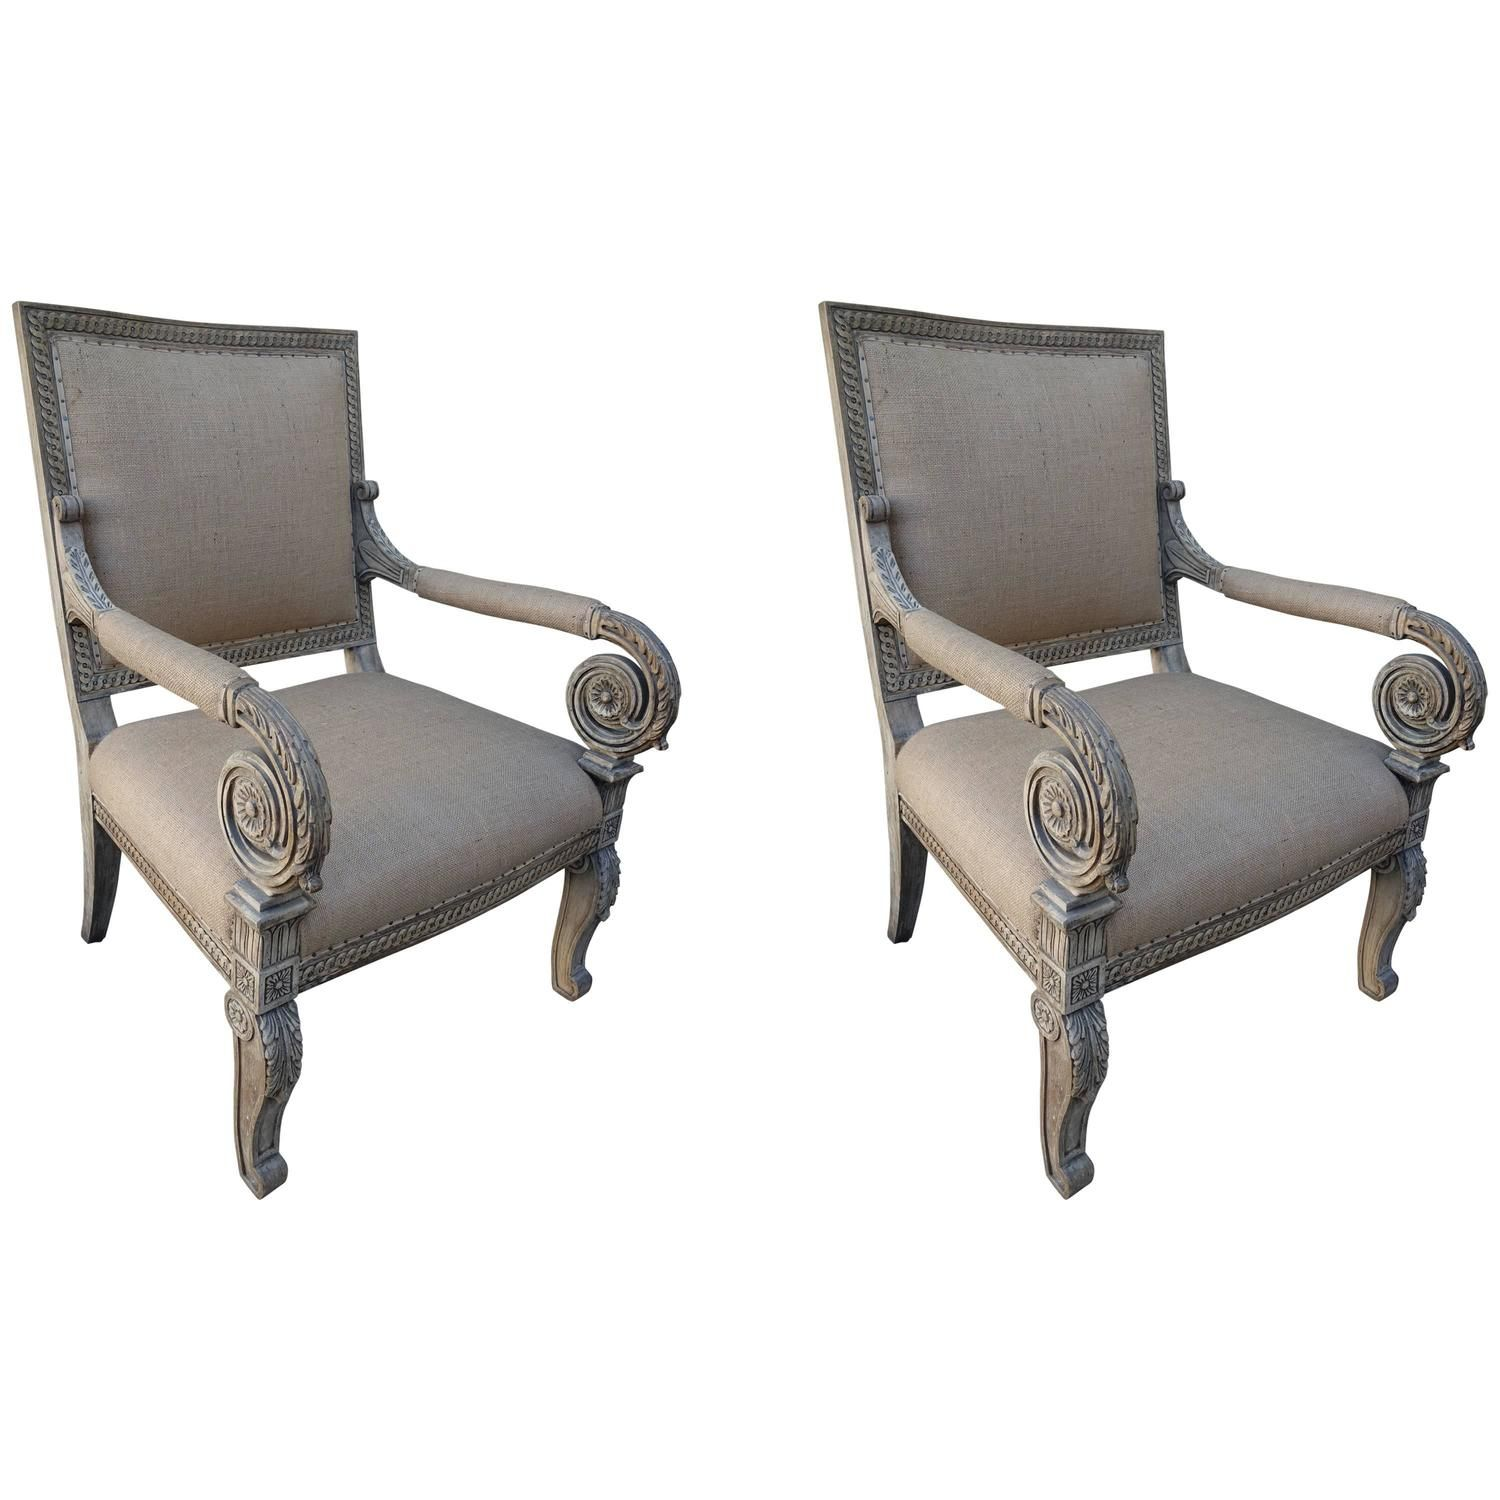 Pair of Carved Italian Armchairs, circa 1900